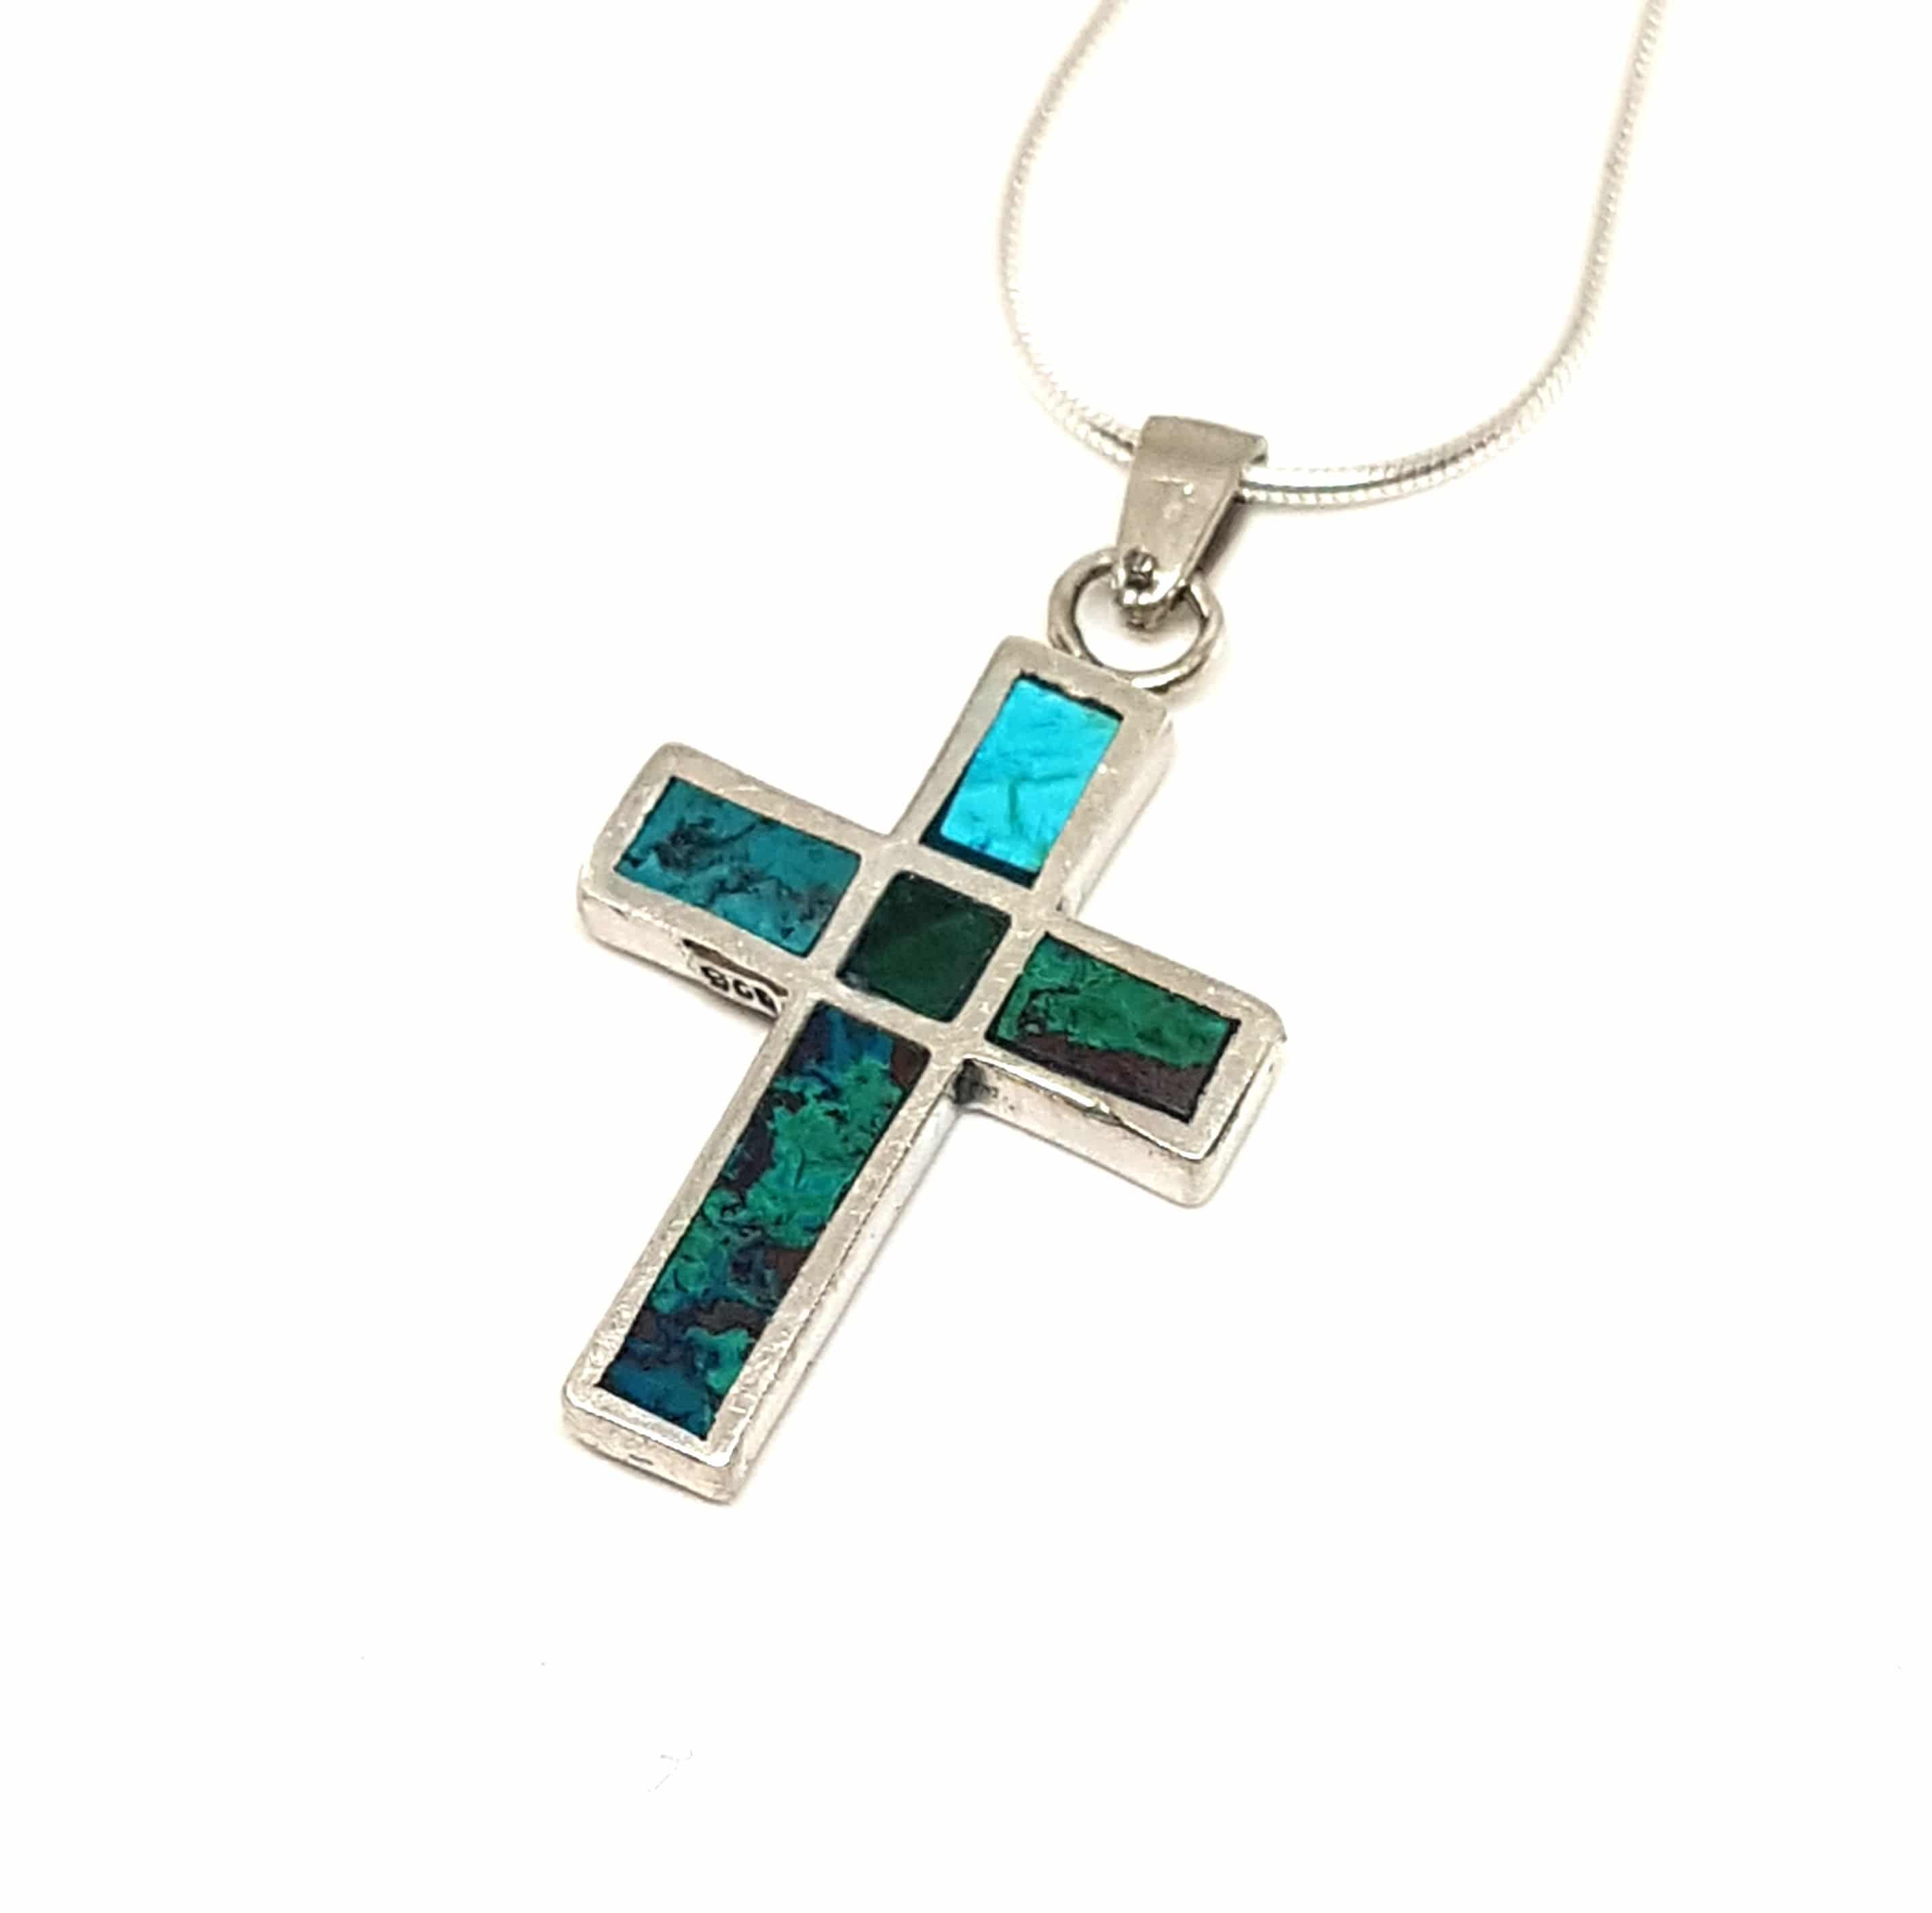 2 Sides 925 Silver Eilat Stone Cross Pendant Necklace ,Roman glass Cross Pendant